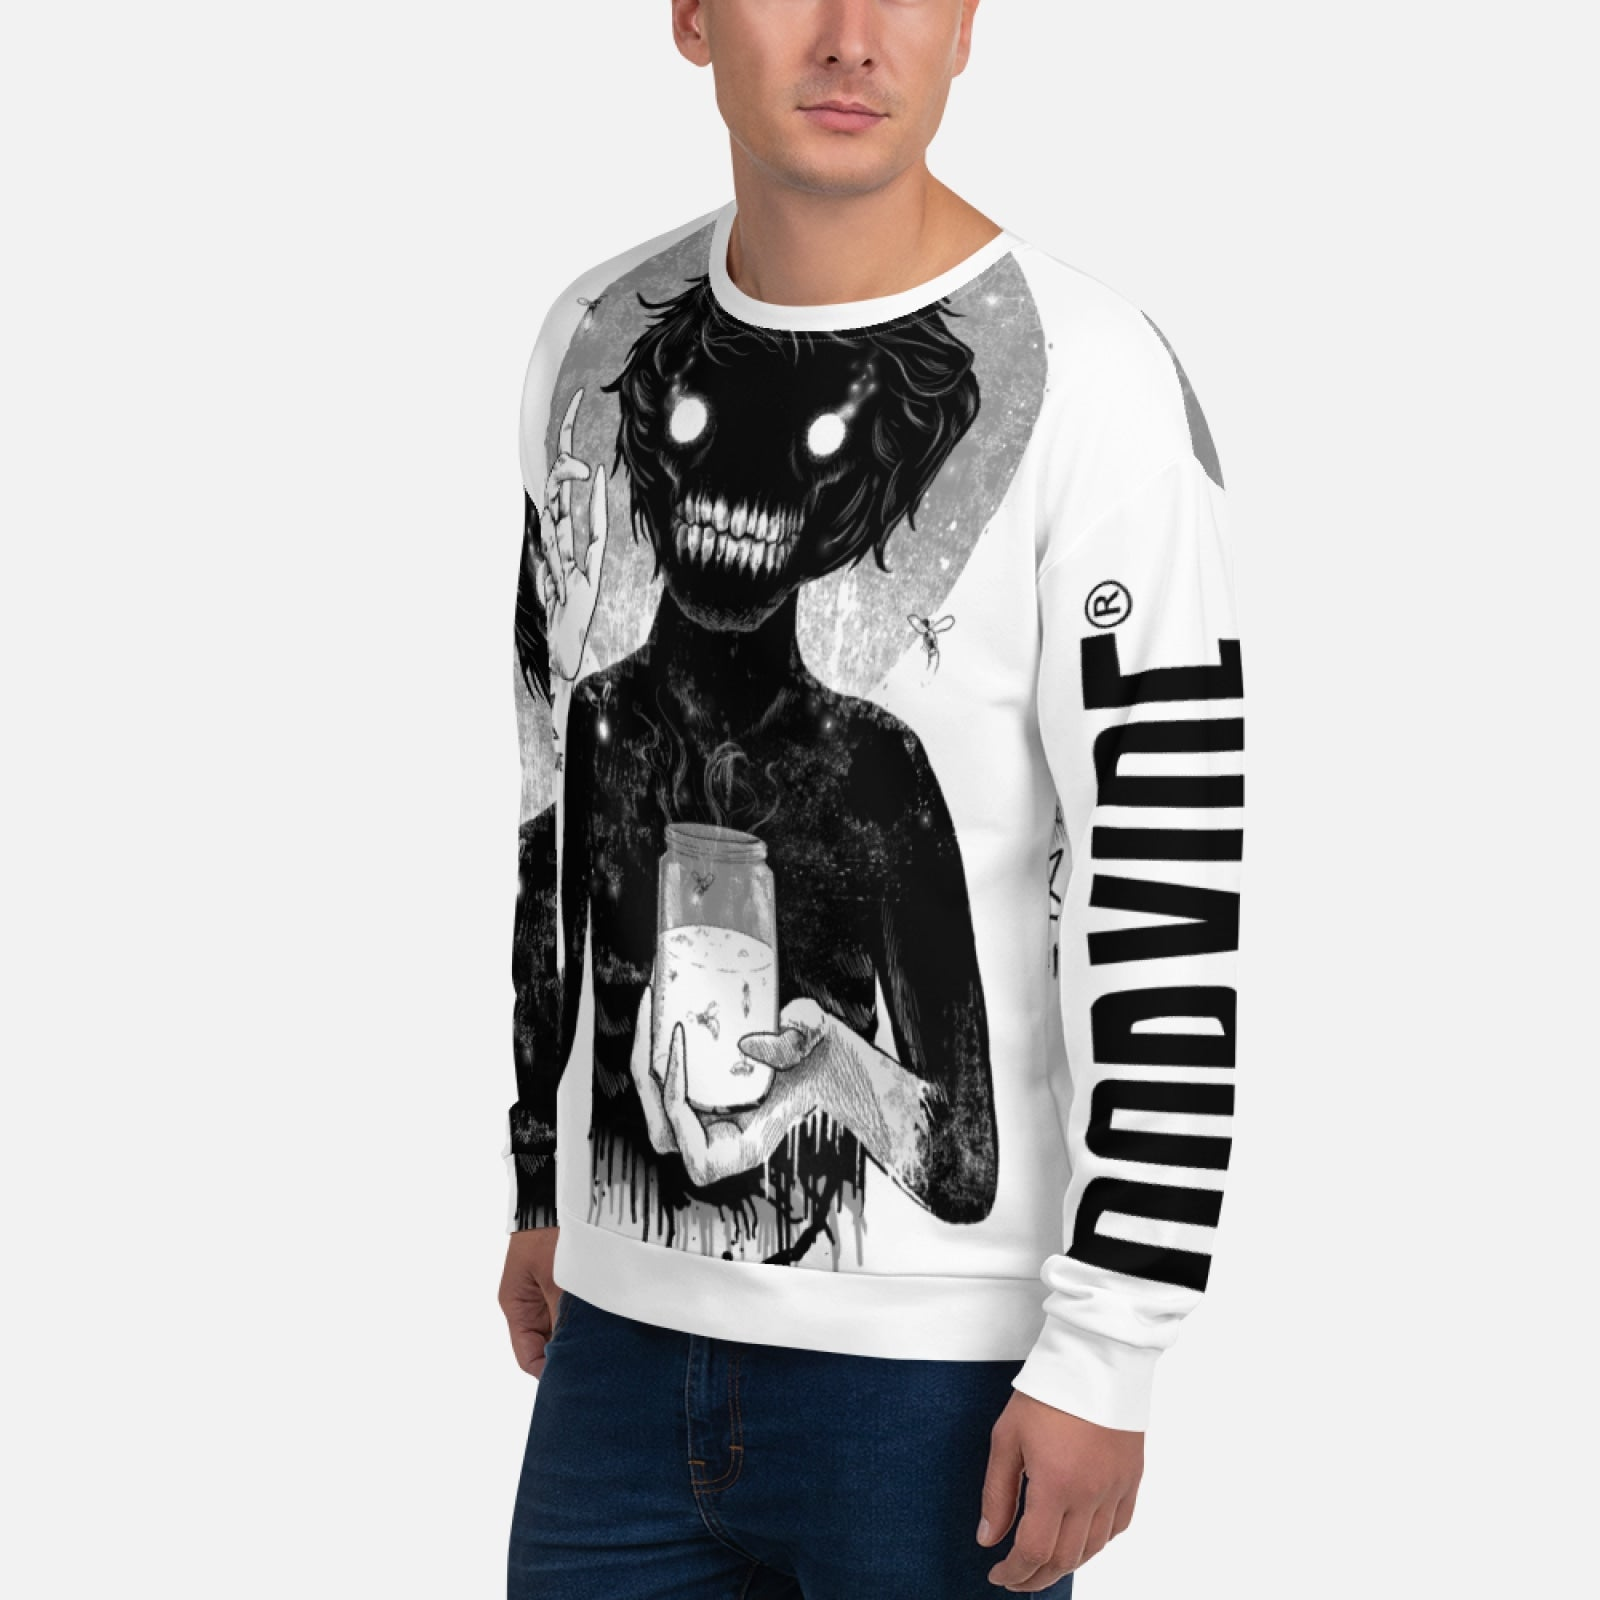 Creep Unisex Hand Sewn All over Print Sweatshirt Sweatshirt Norvine